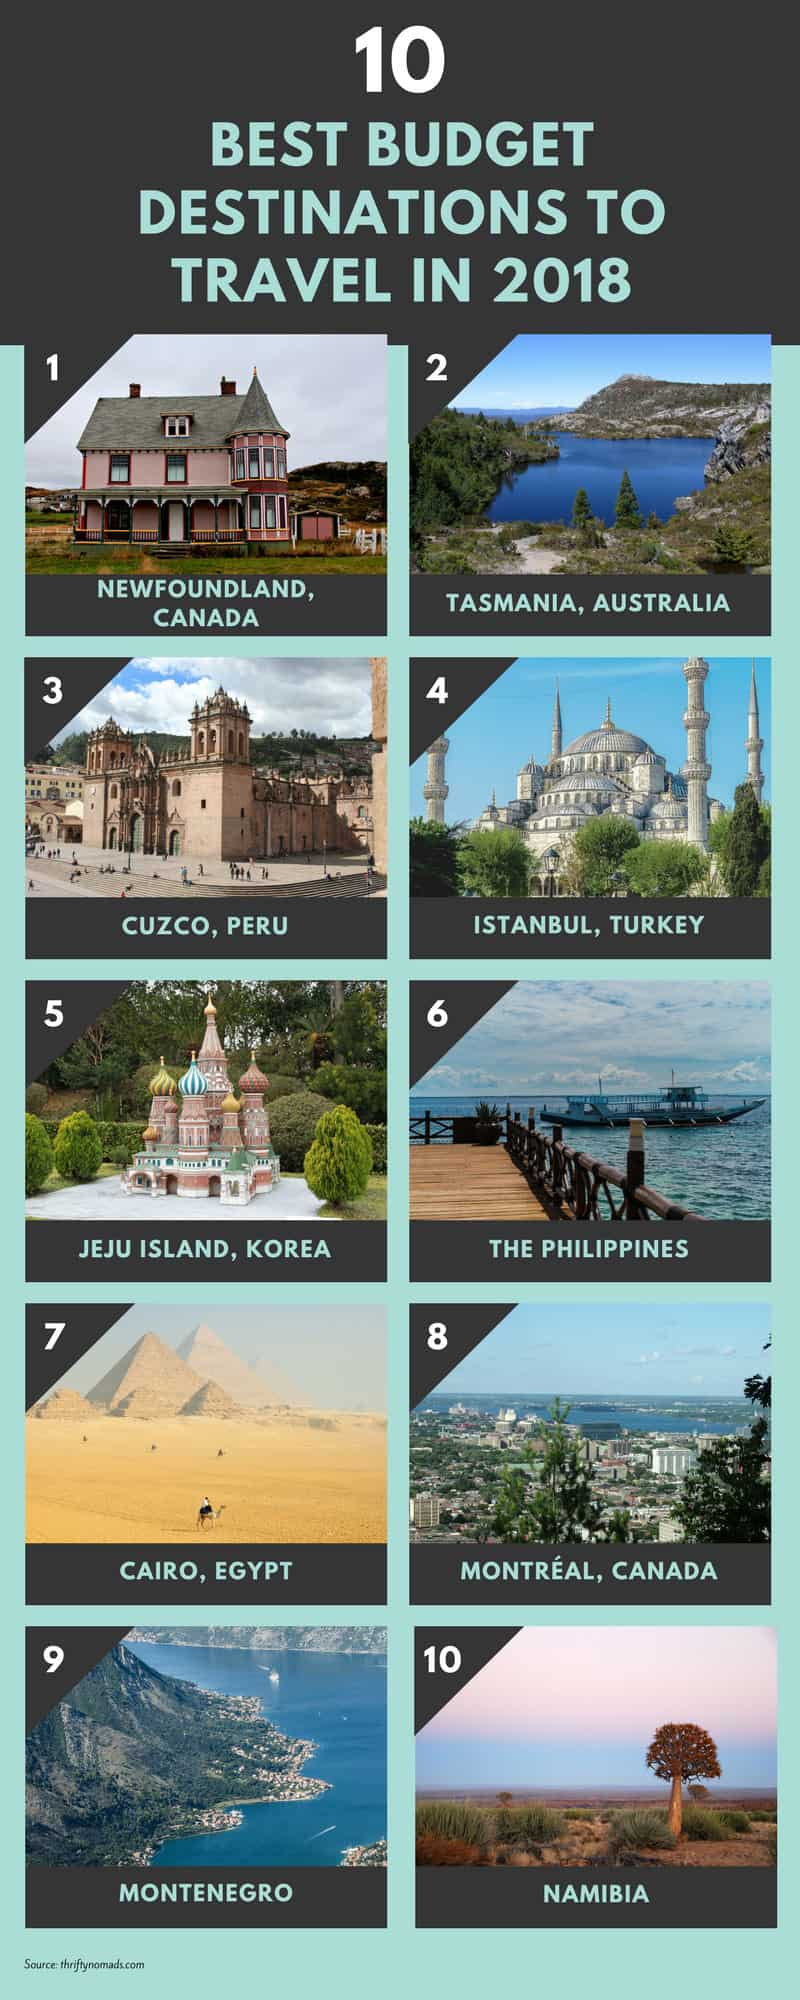 10 Best Budget Travel Destinations of 2018